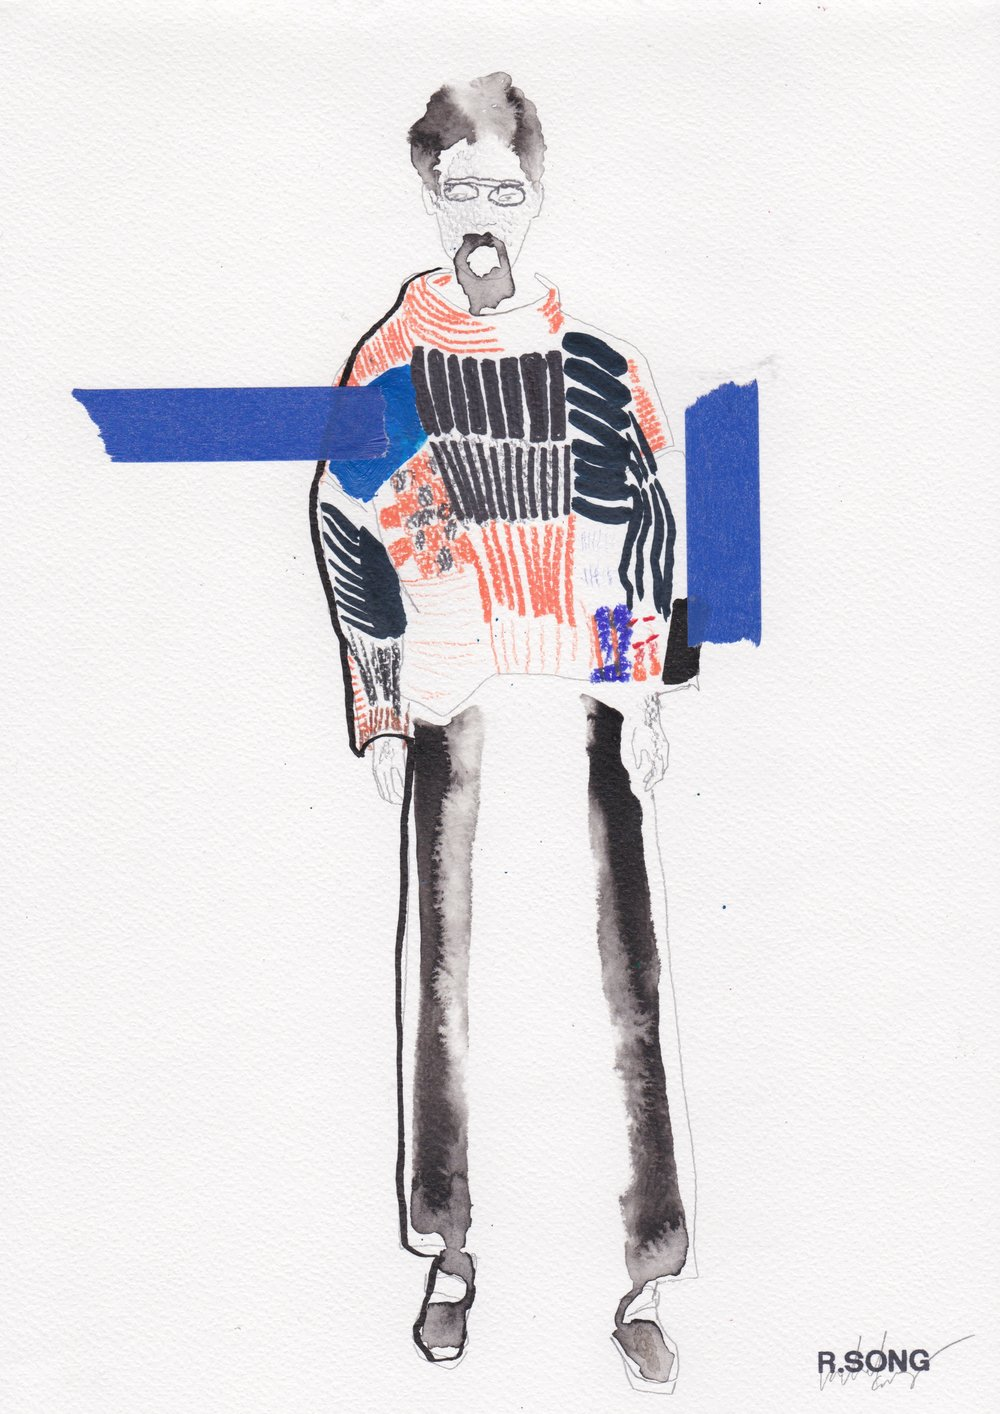 Eckhaus Latta F/W 2016 RTW Indian Ink, Graphite, Prismacolour Pencils, Marker and Washi tape on Watercolour paper